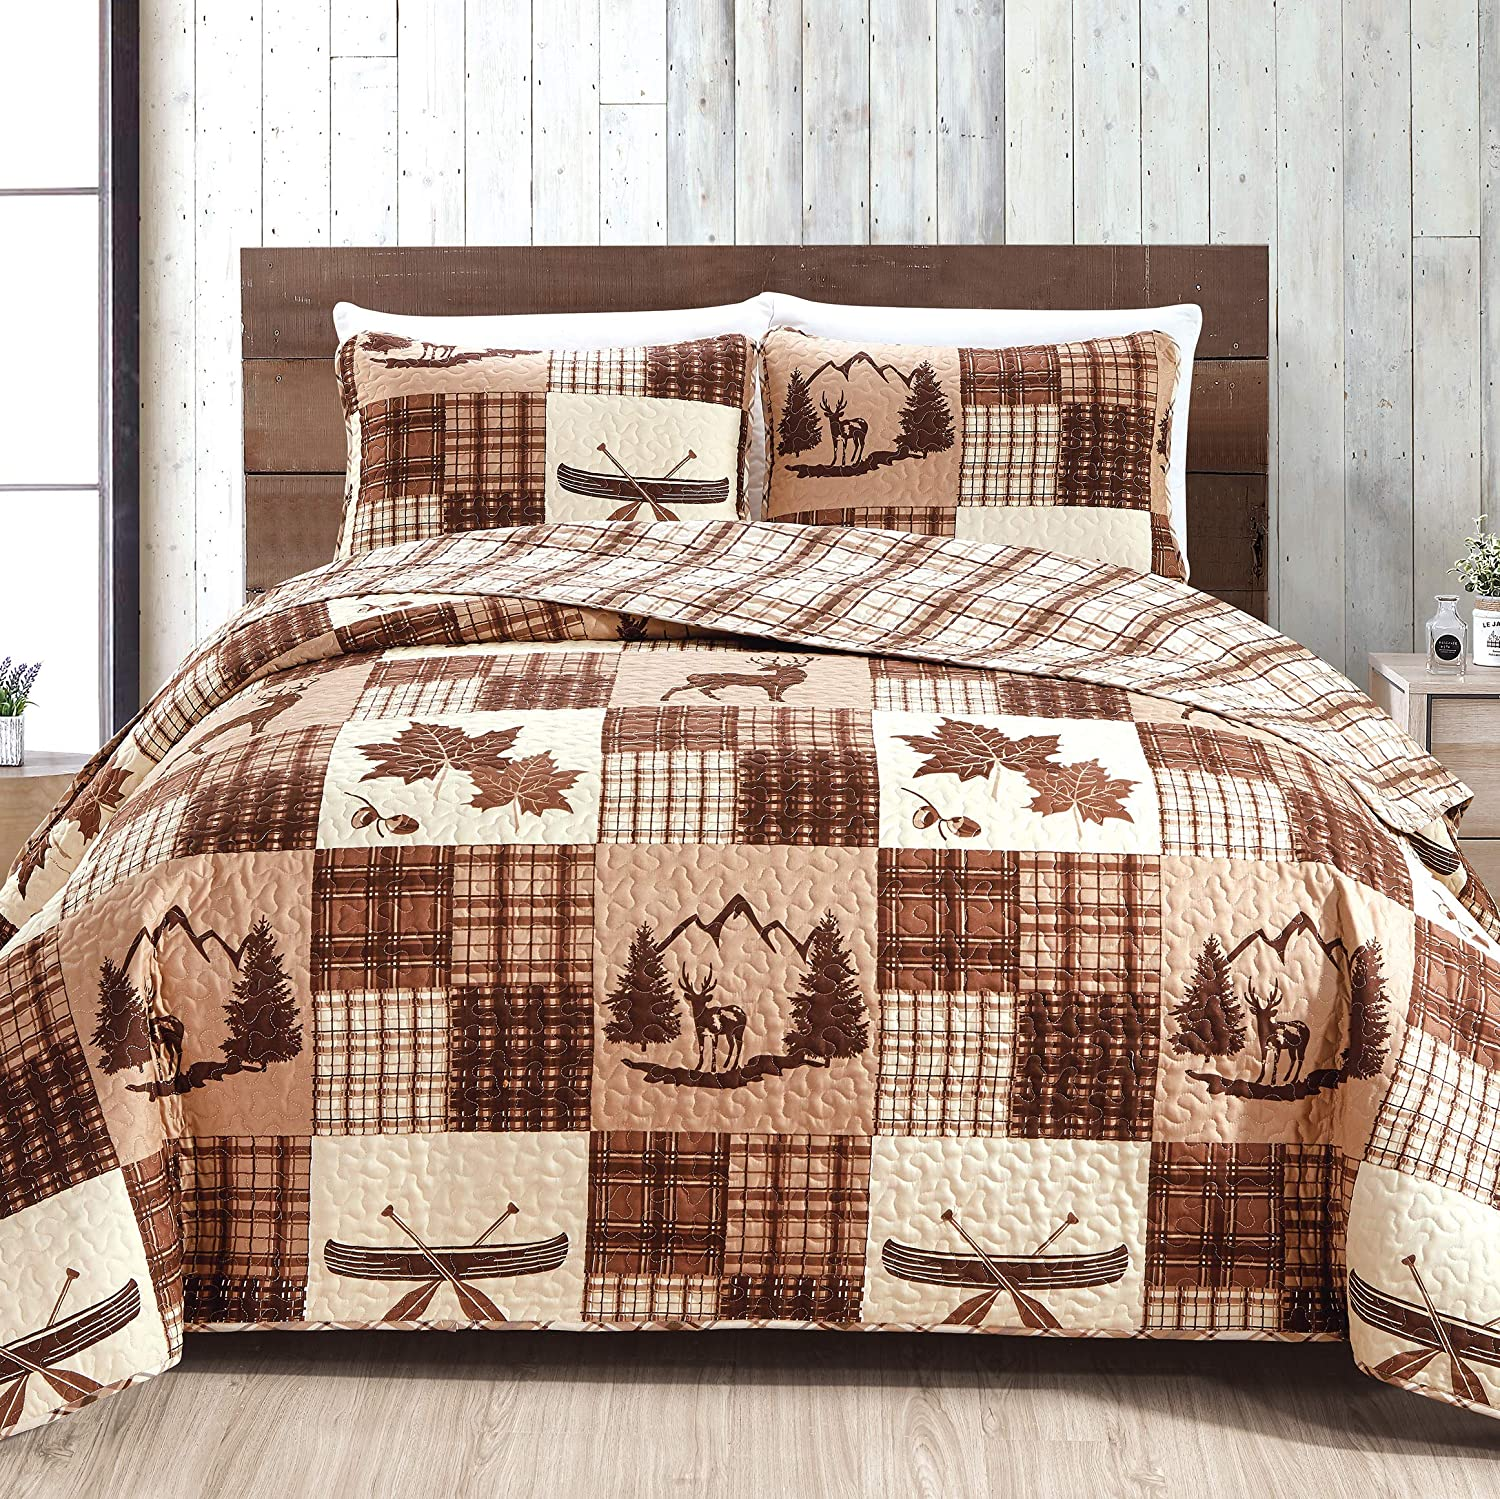 Great Bay Home Lodge Bedspread King Size Quilt with 2 Shams. Cabin 3-Piece Reversible All Season Quilt Set. Rustic Quilt Coverlet Bed Set. Redwood Collection.